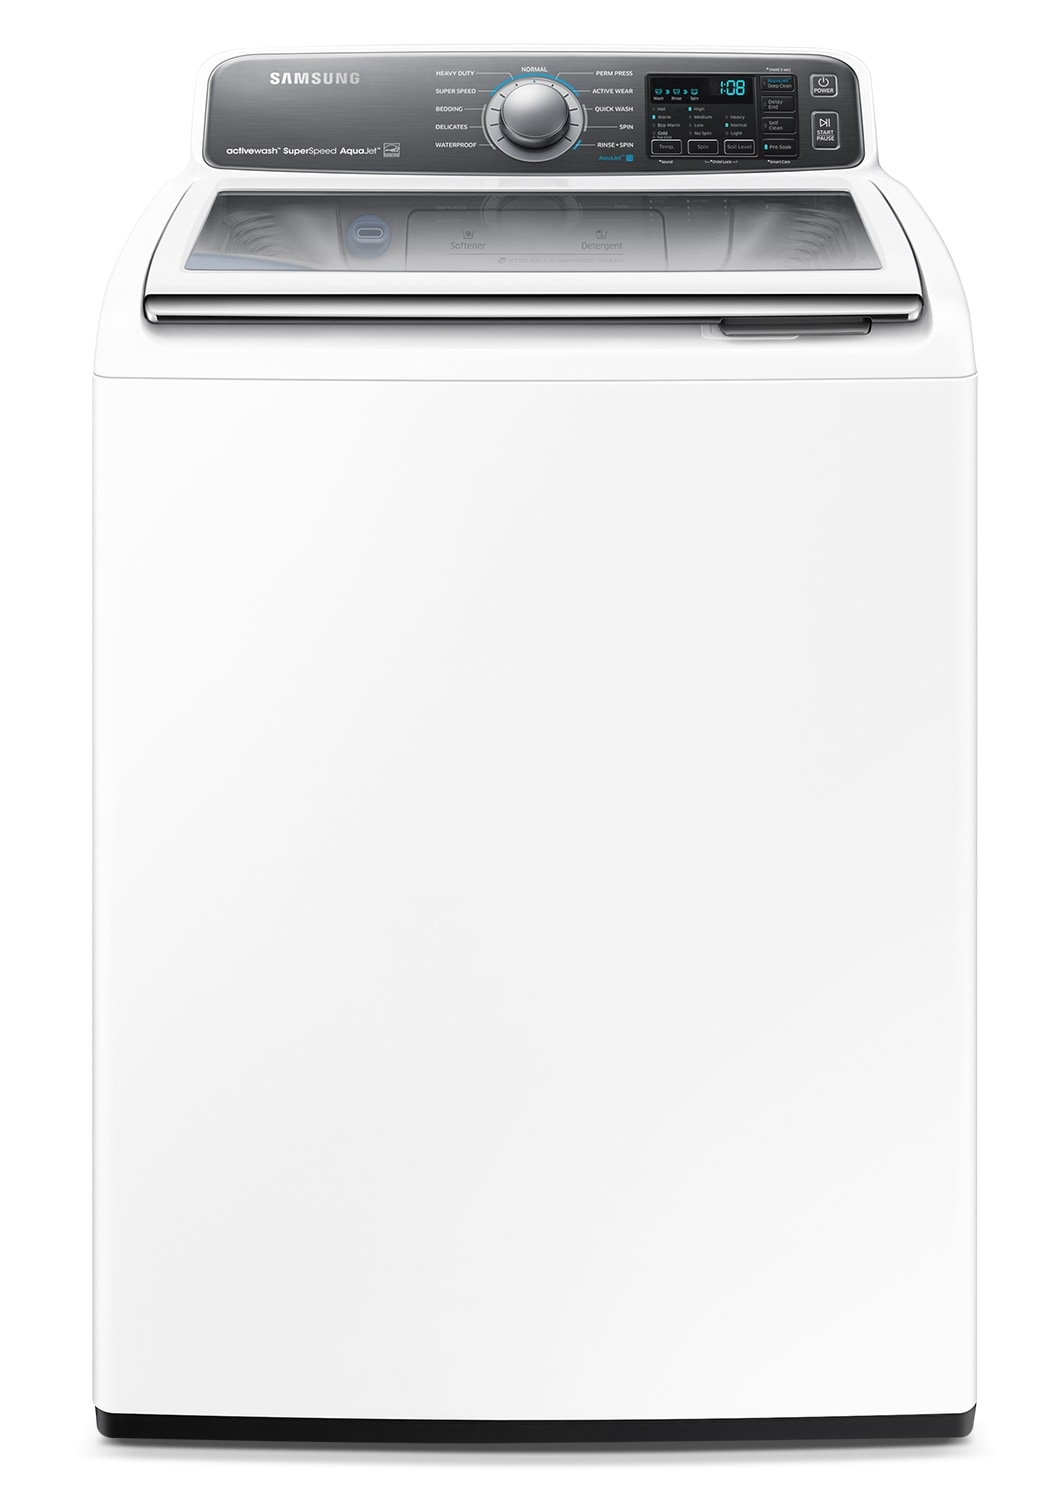 Washers and Dryers - Samsung White Top-Load Washer (5.5 Cu. Ft. IEC) - WA48J7770AW/A2